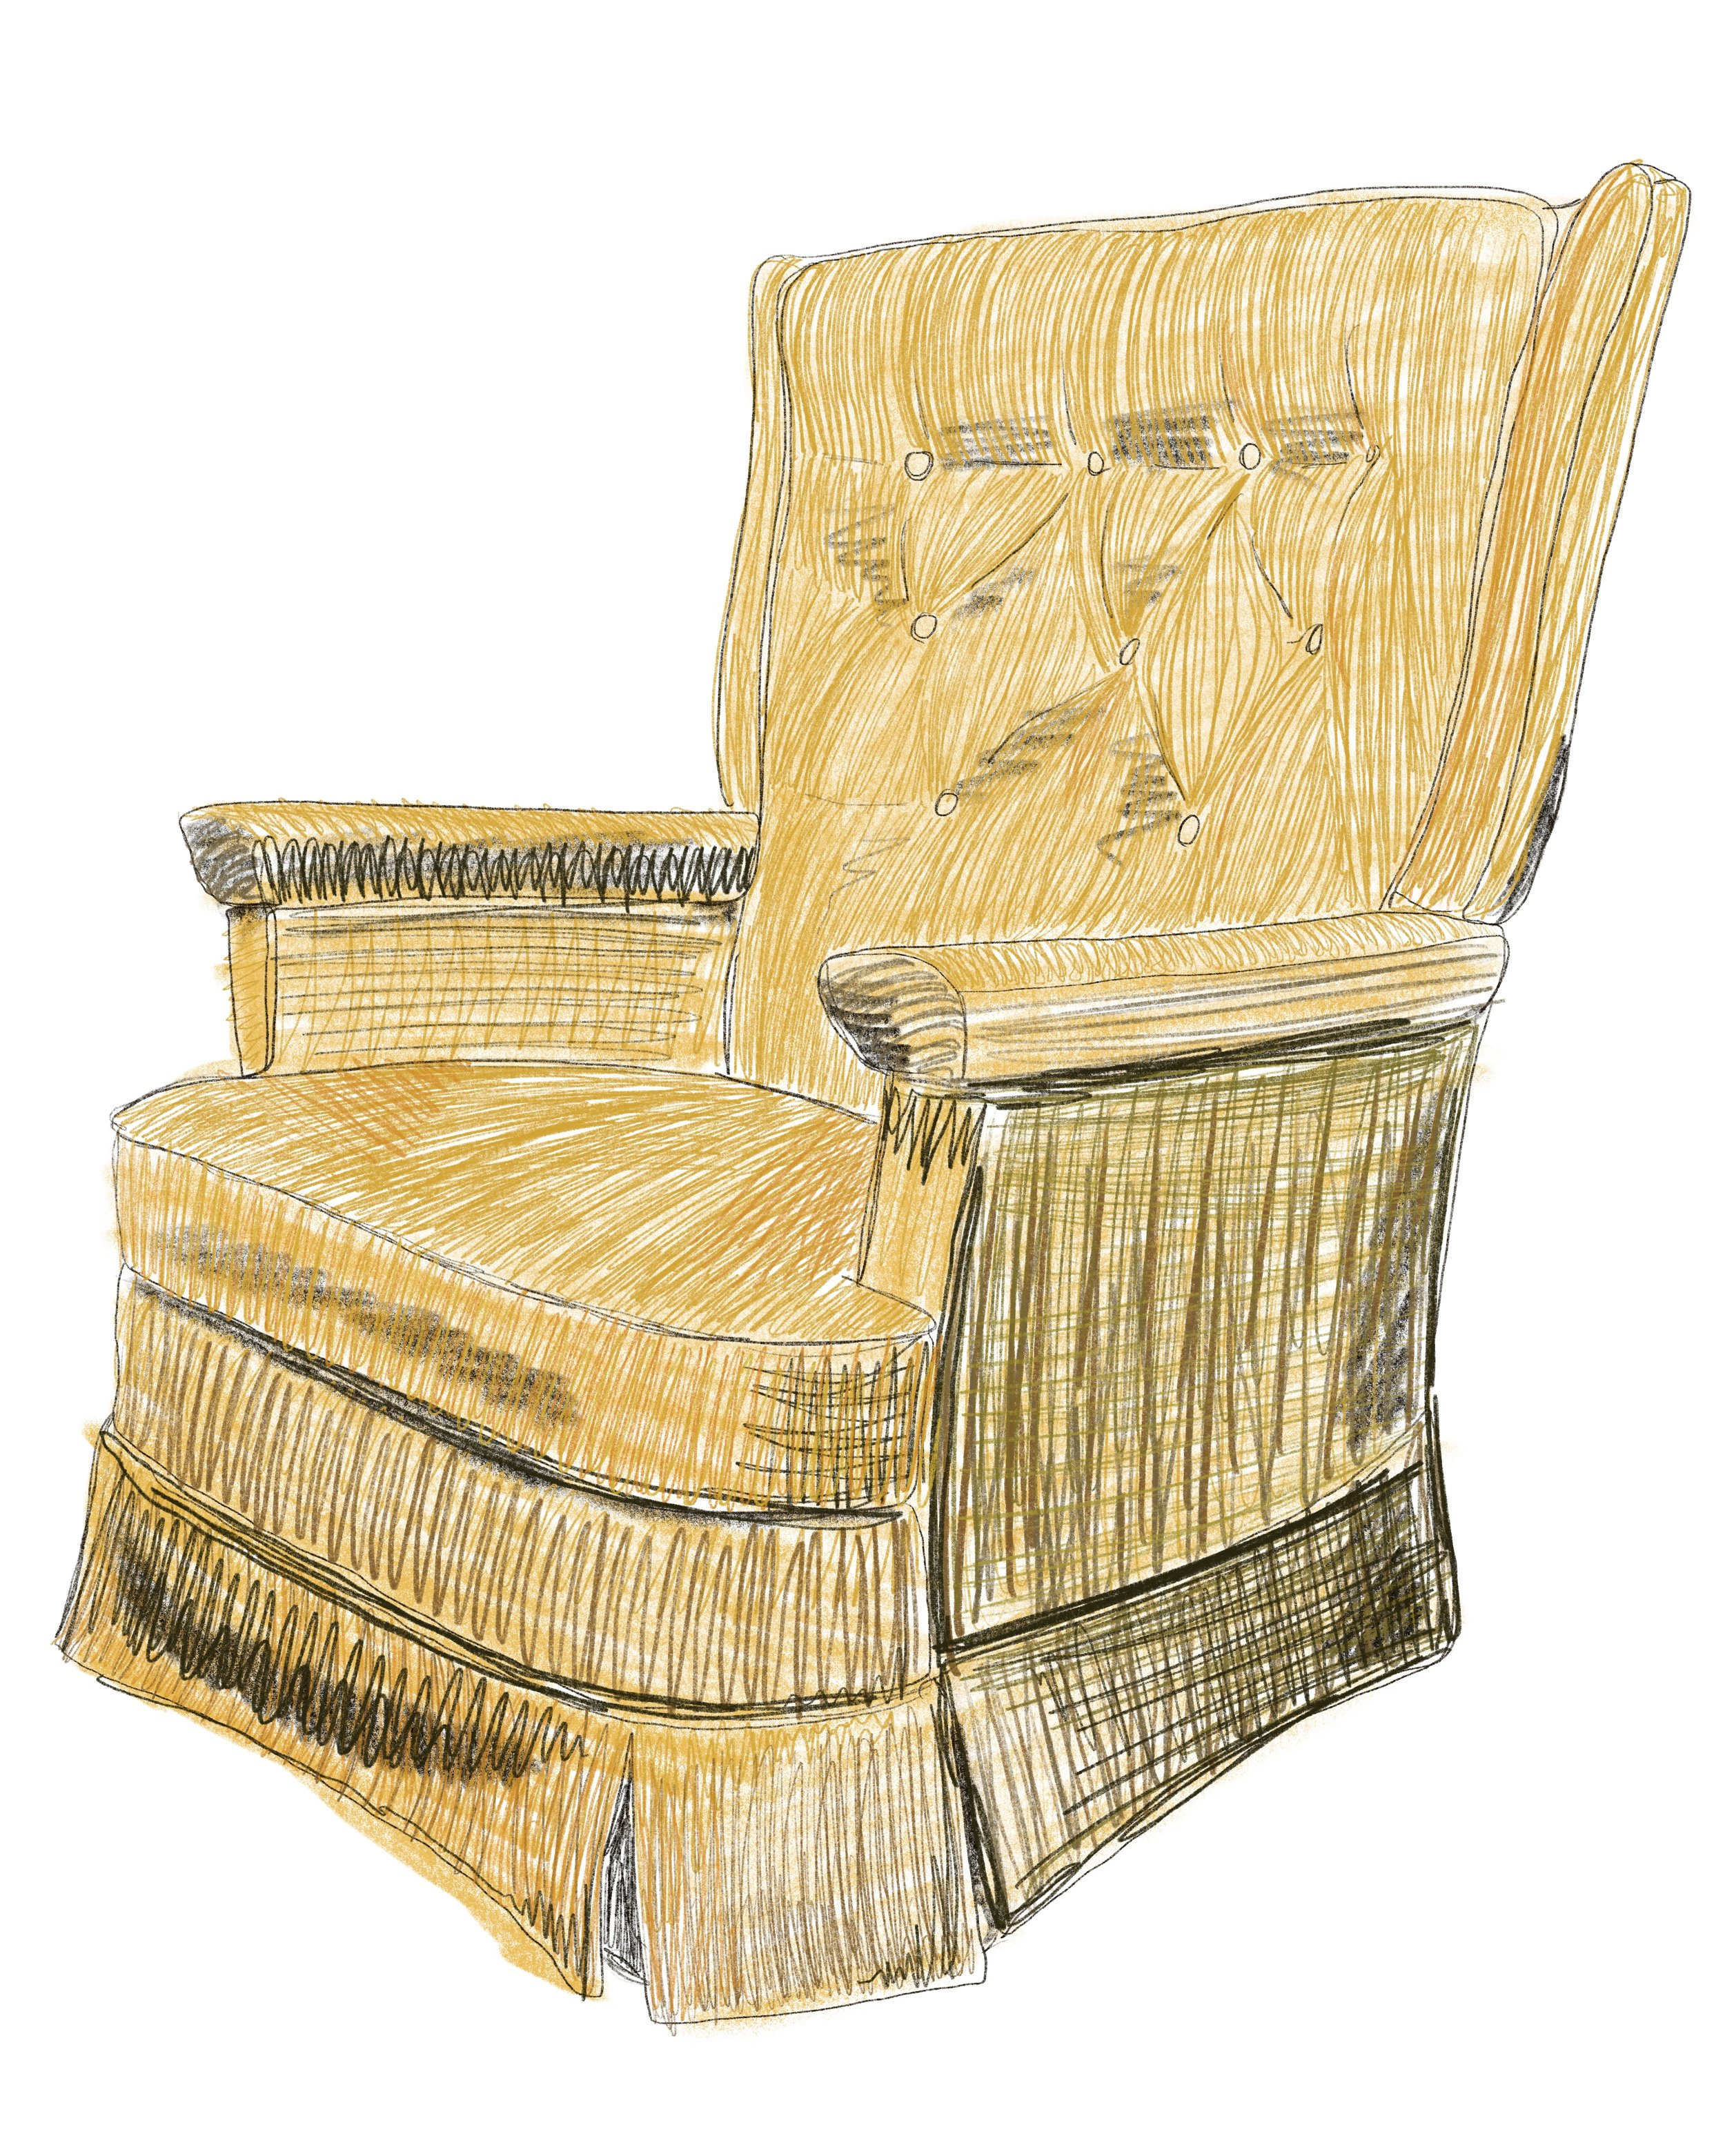 Chair Illustrations by Mads Beaulieu